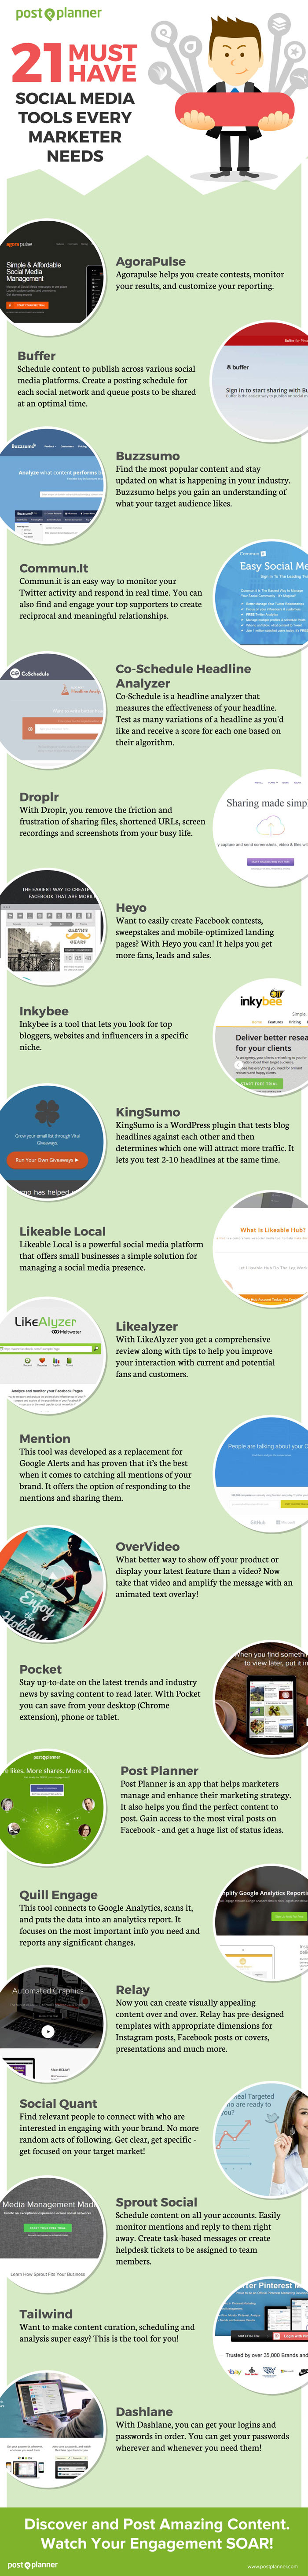 21 Must-Have Social Media Marketing Dashboards for Brainy Marketers (like You?) - #infographic